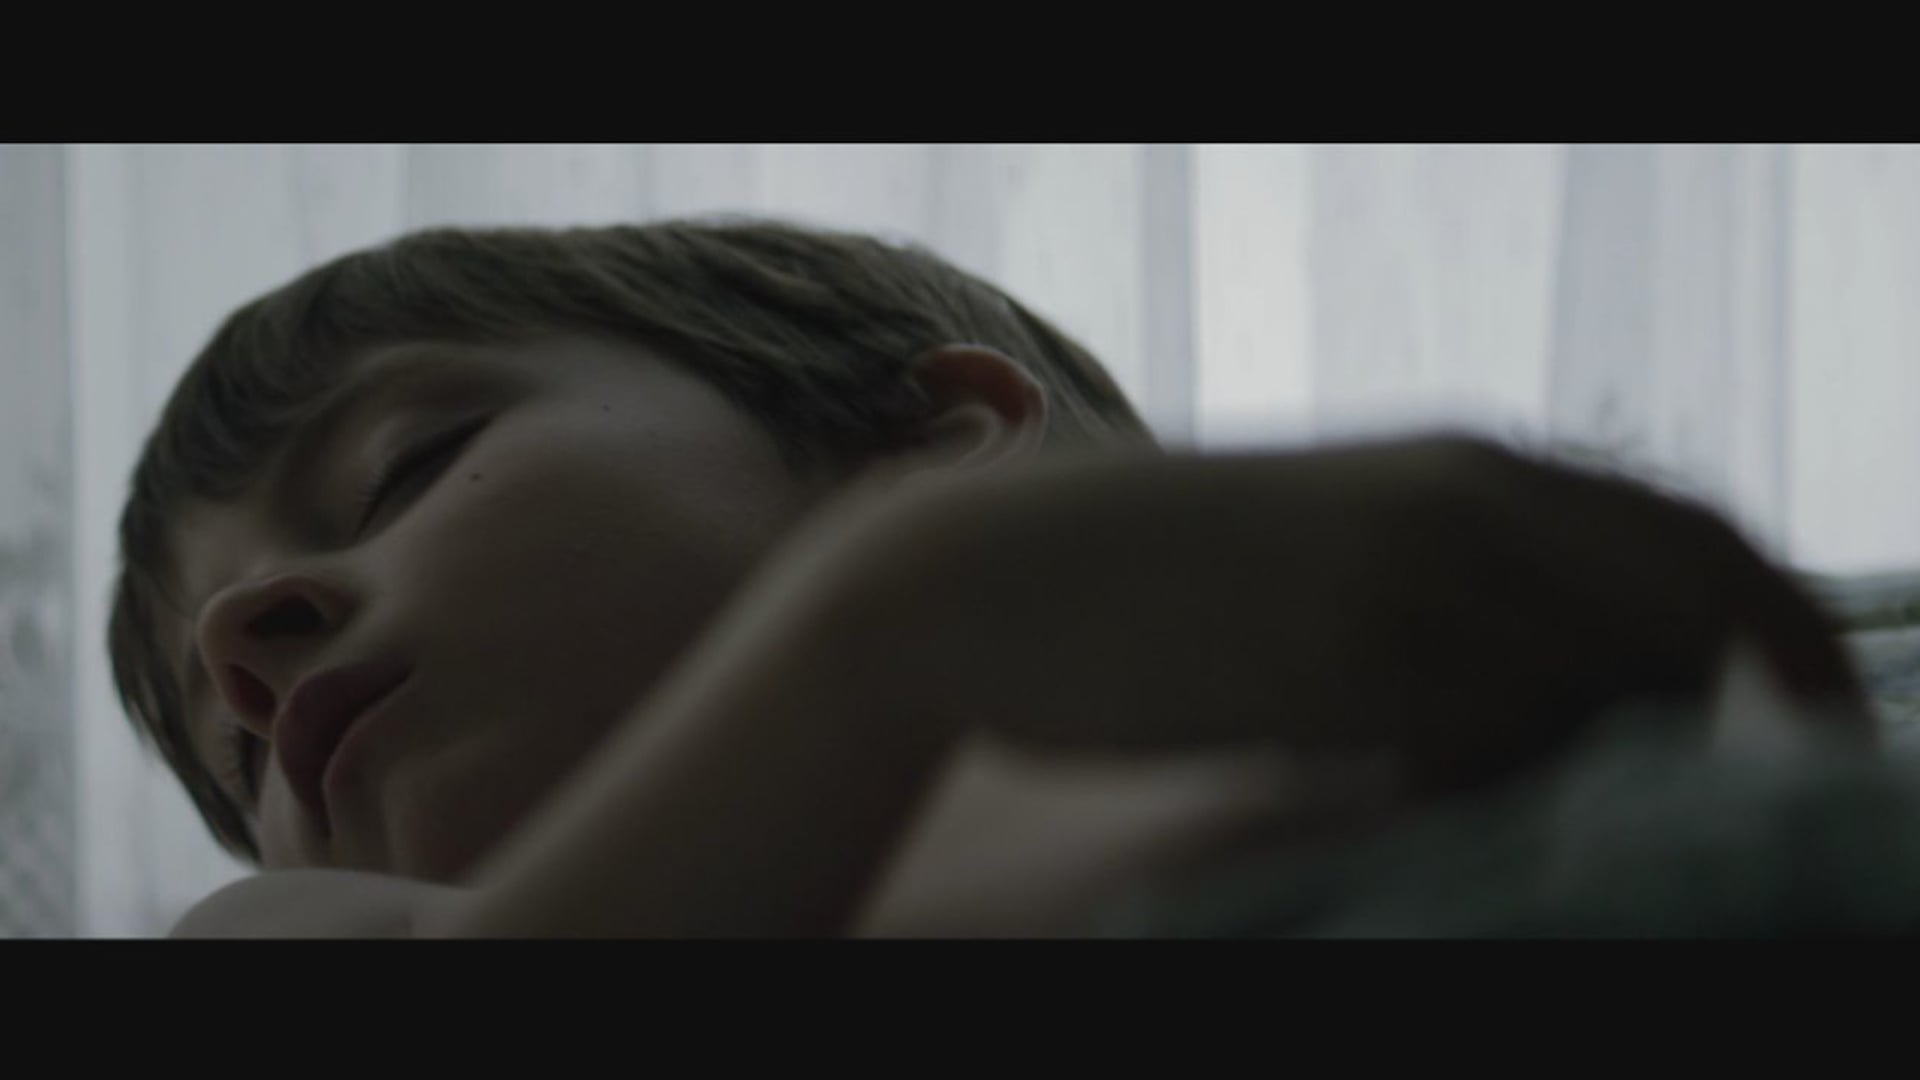 BED by David Whitehouse (UK Trailer)